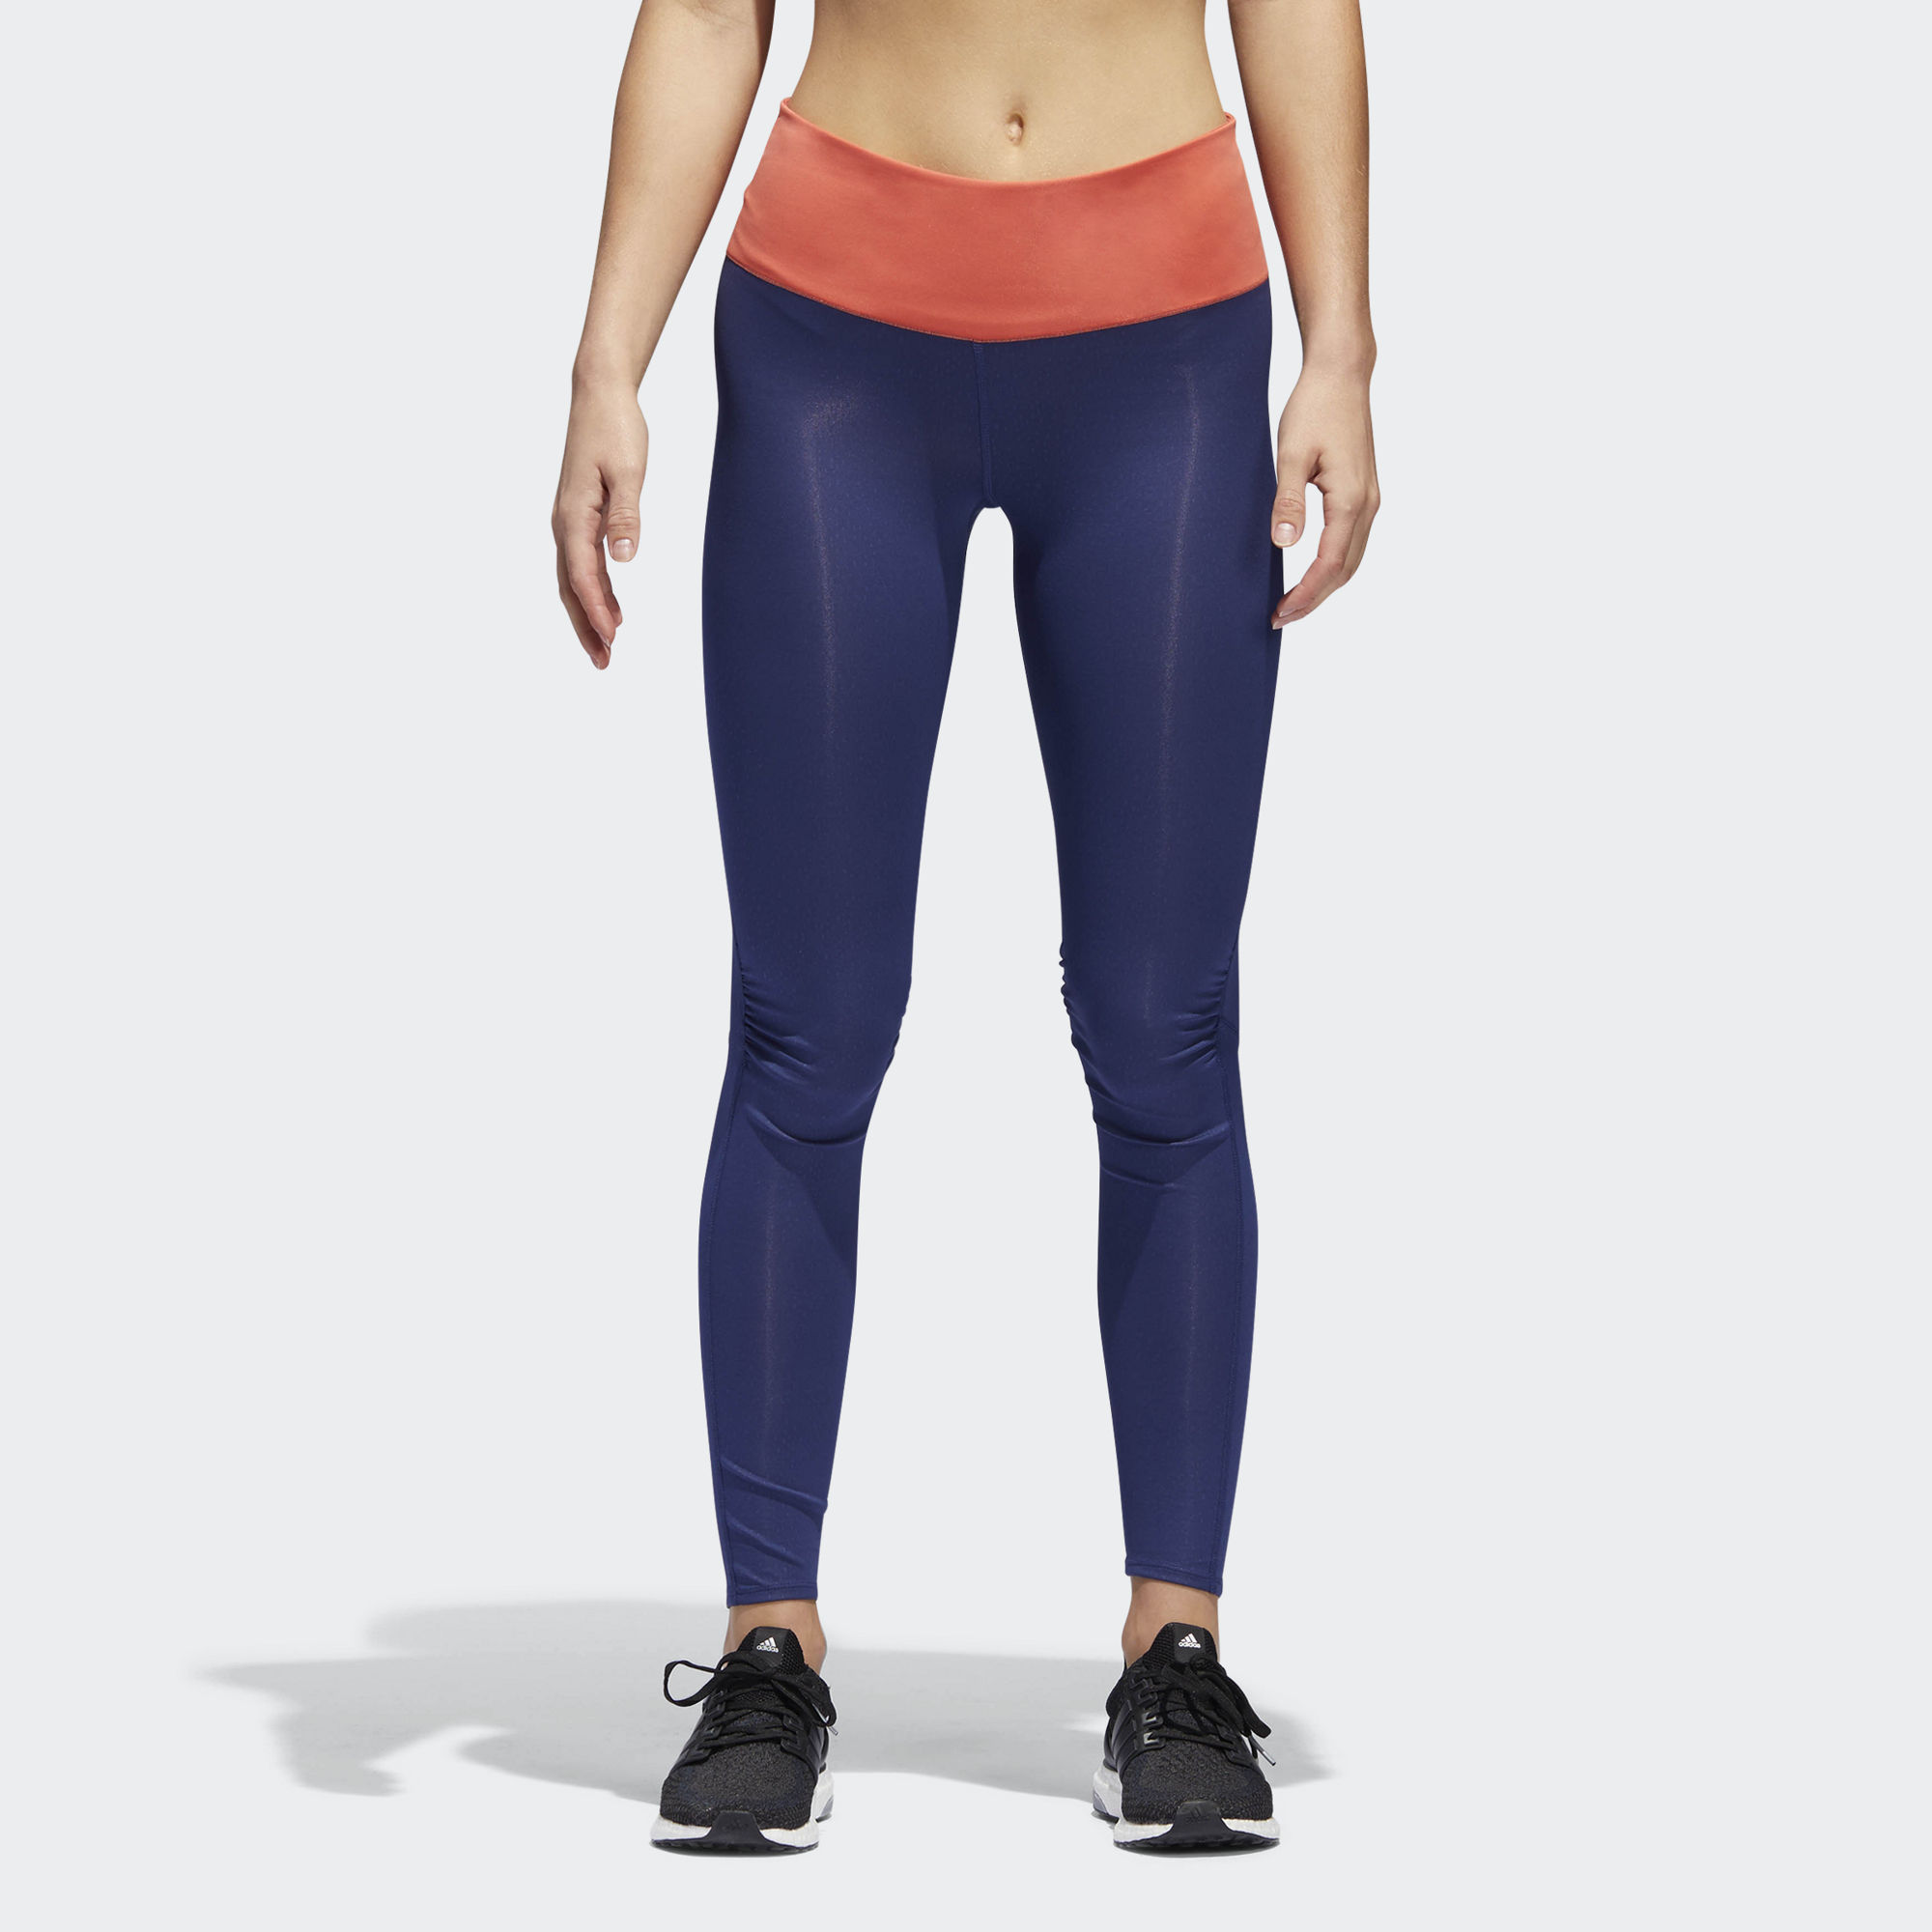 adidas Supernova Long Tight w in Blau Lila